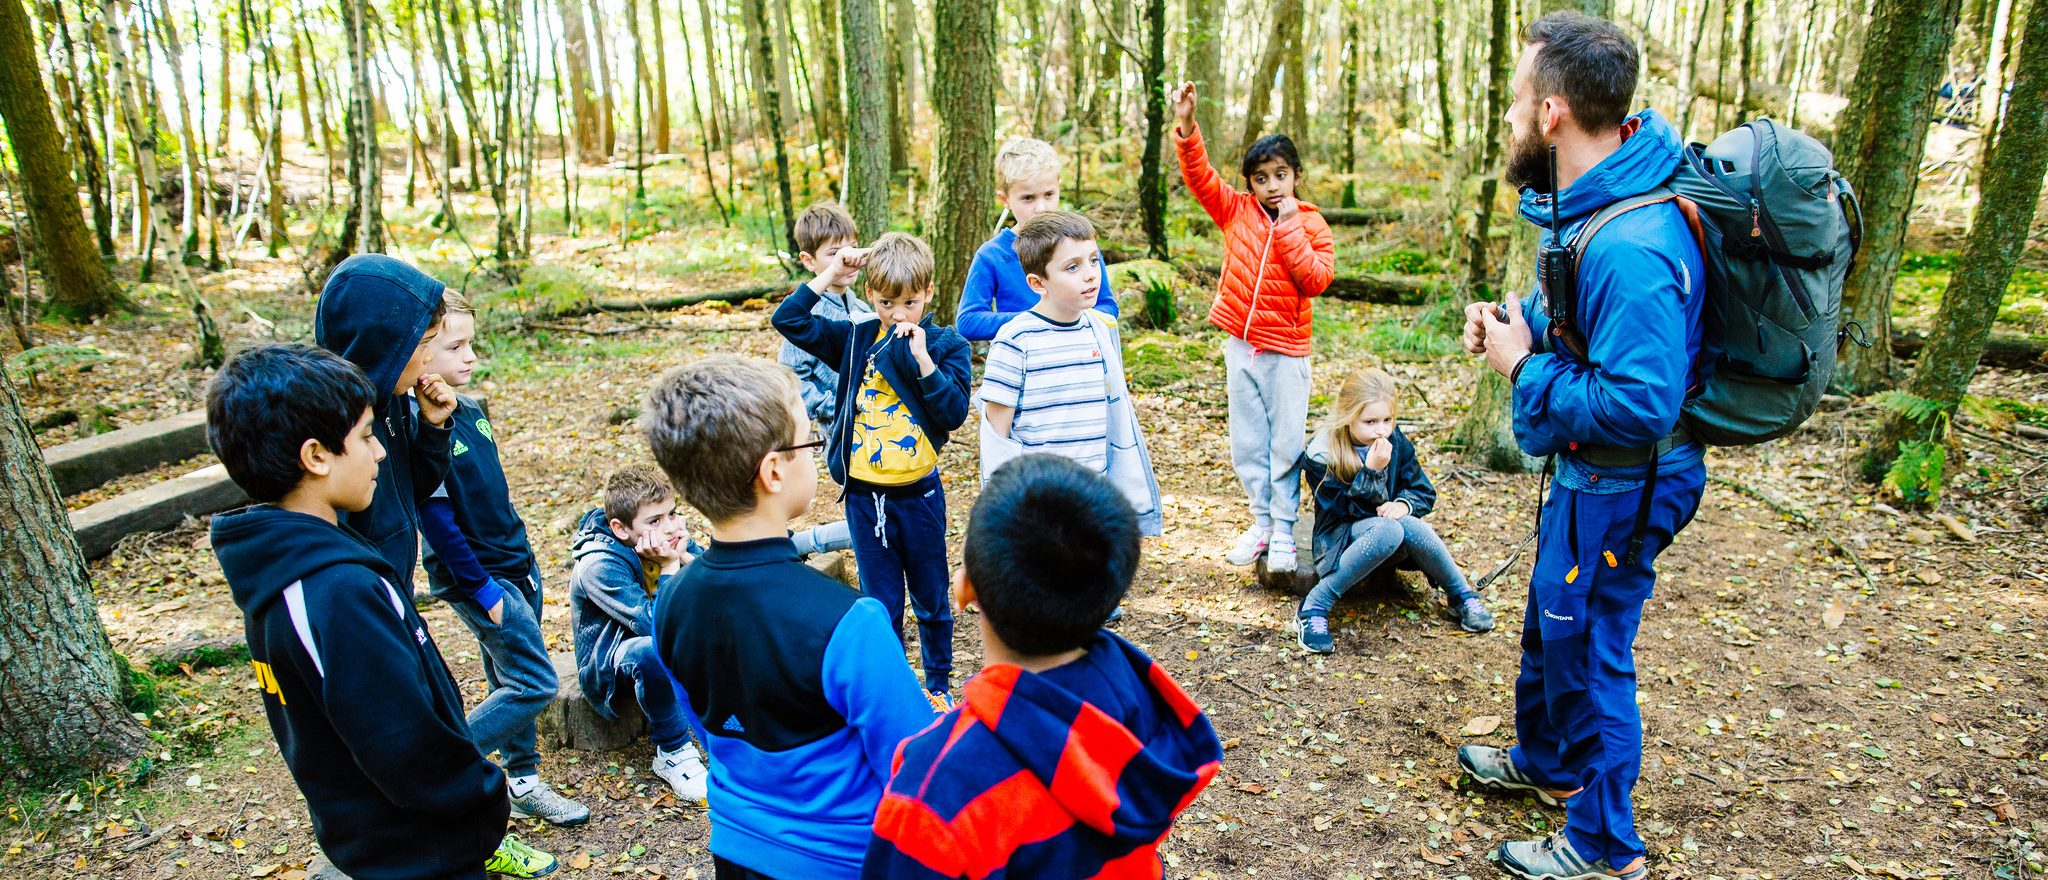 Children on team building activity